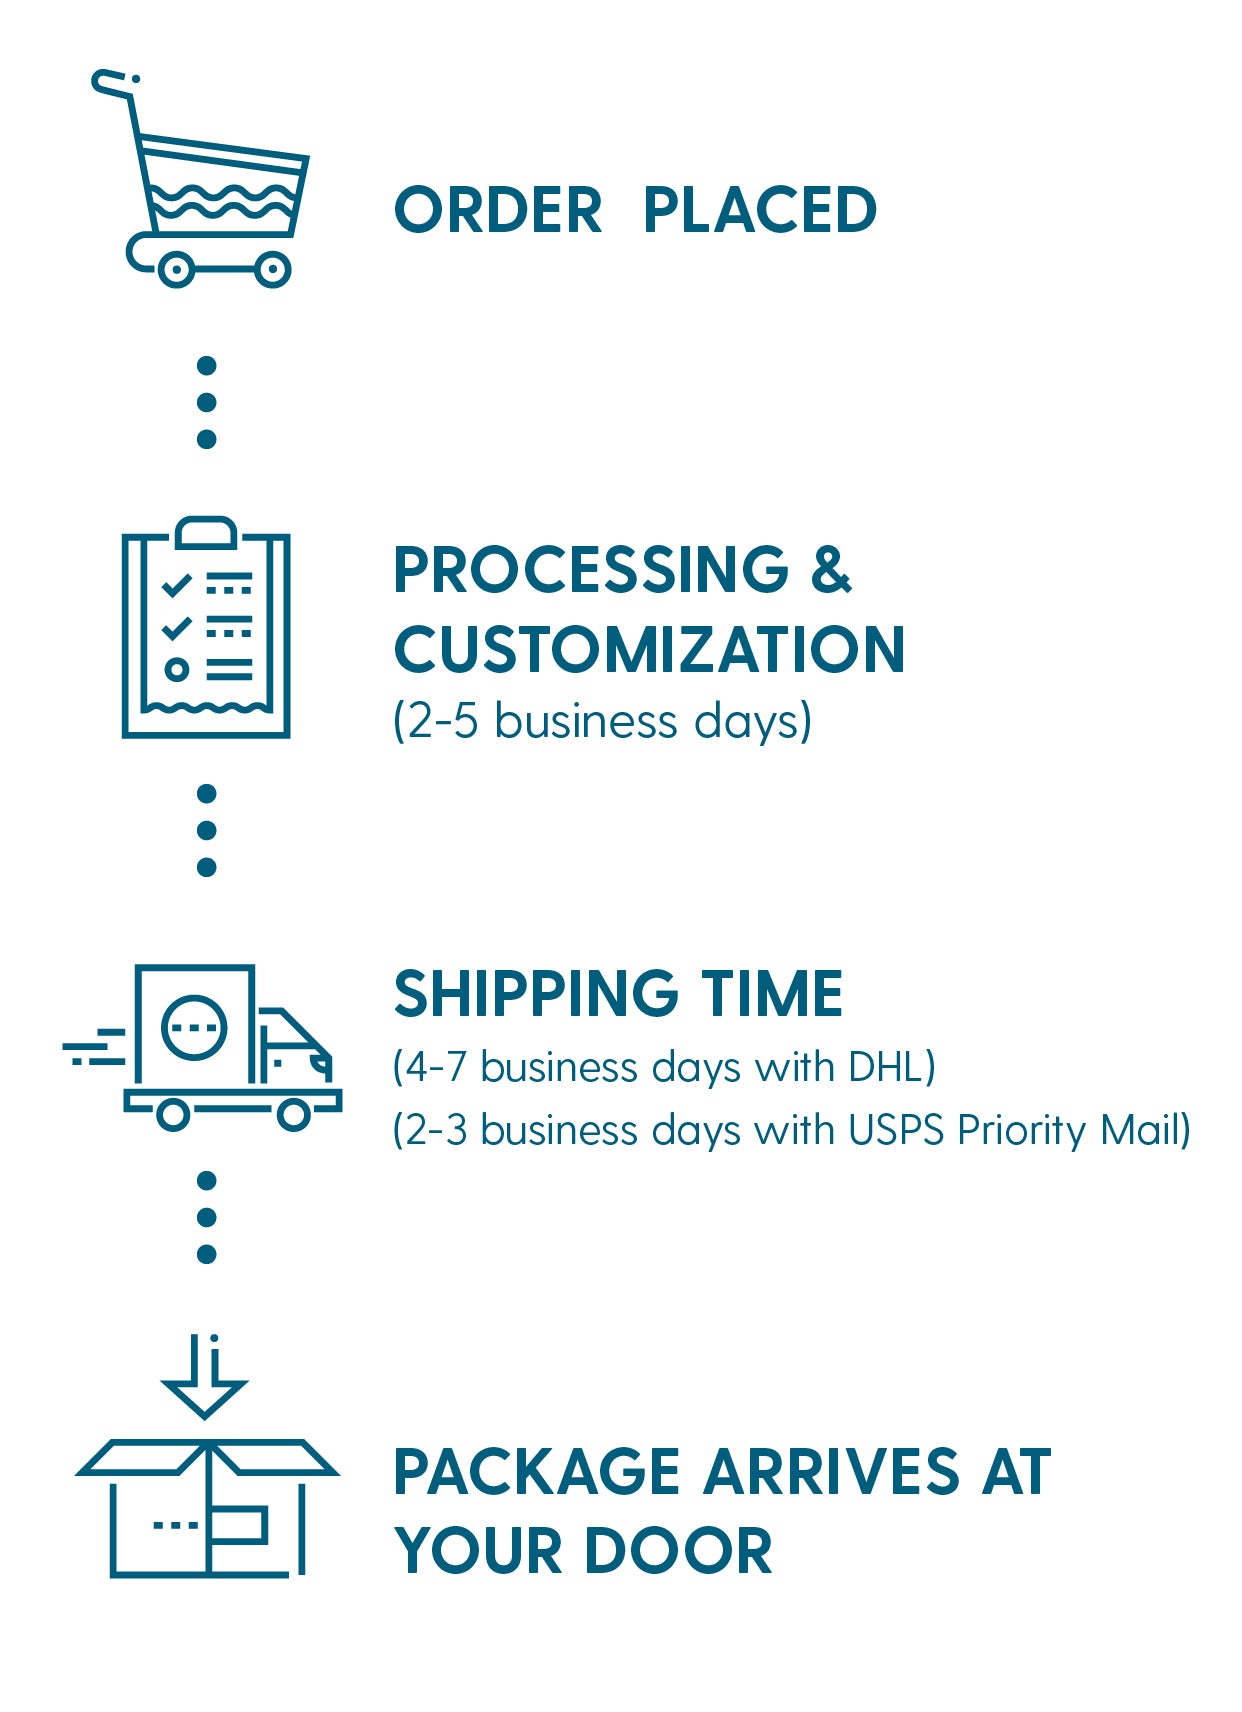 Order Processing and Delivery Times